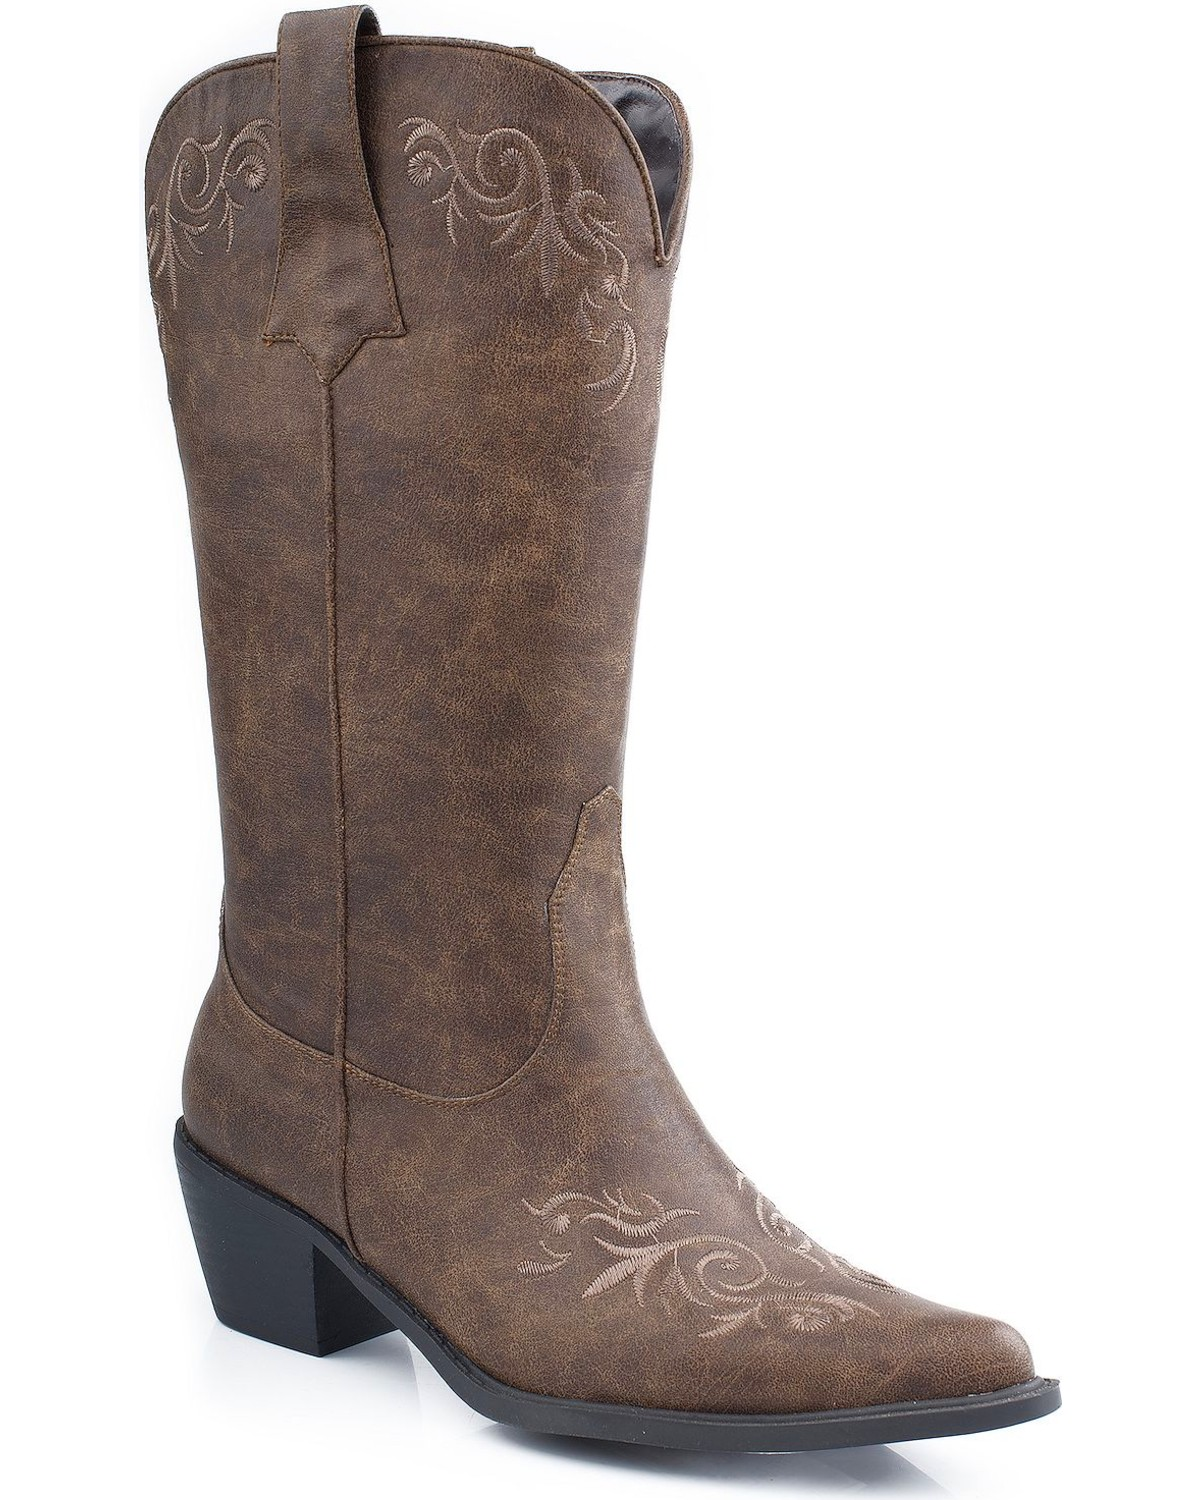 0d64f14438d Roper Embroidered Faux Leather Cowgirl Boots - Pointed Toe